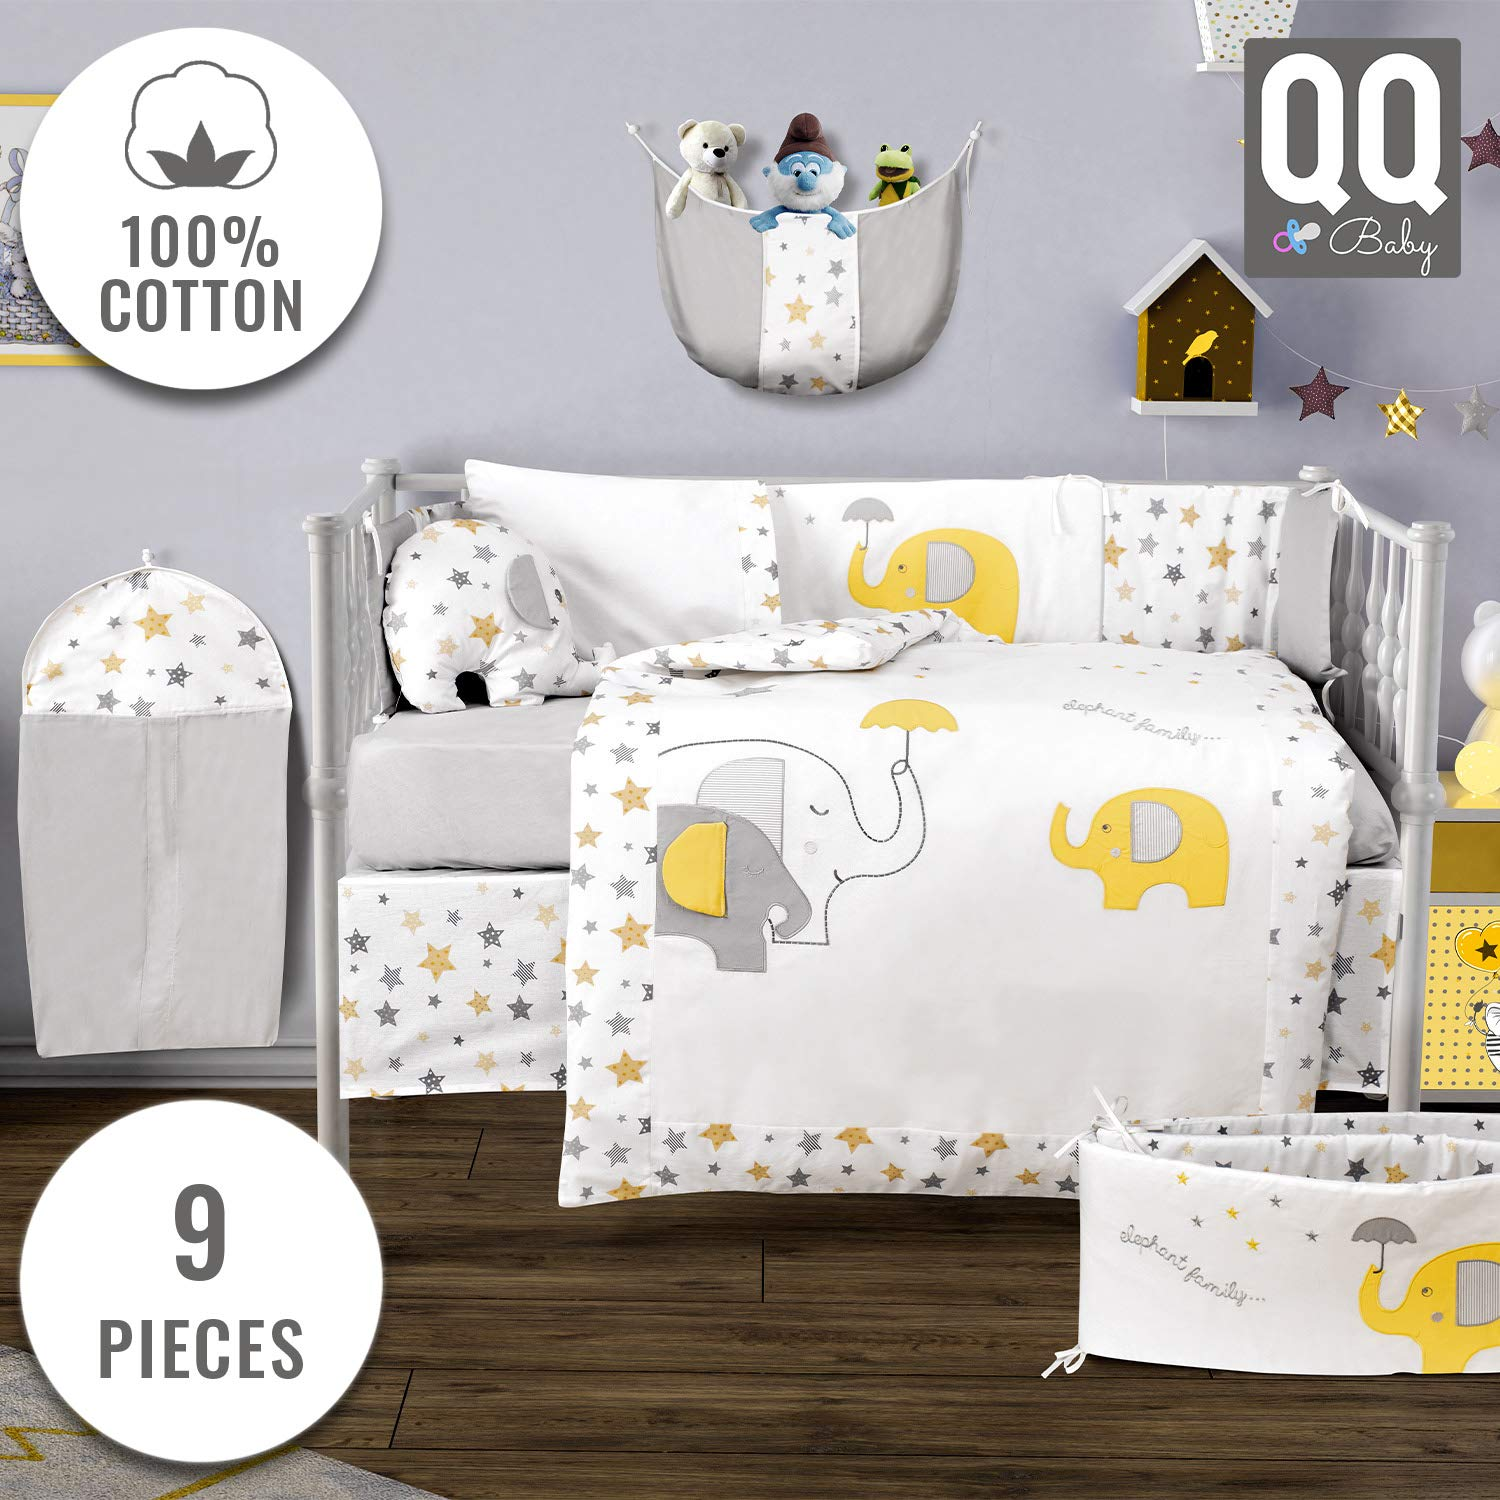 Baby Crib Bedding Set - 100% Turkish Cotton - 9 Piece Nursery Crib Bedding Sets for Boys & Girls - Elephant Design - 4 Color Variations by QQ Baby (Yellow & Gray)